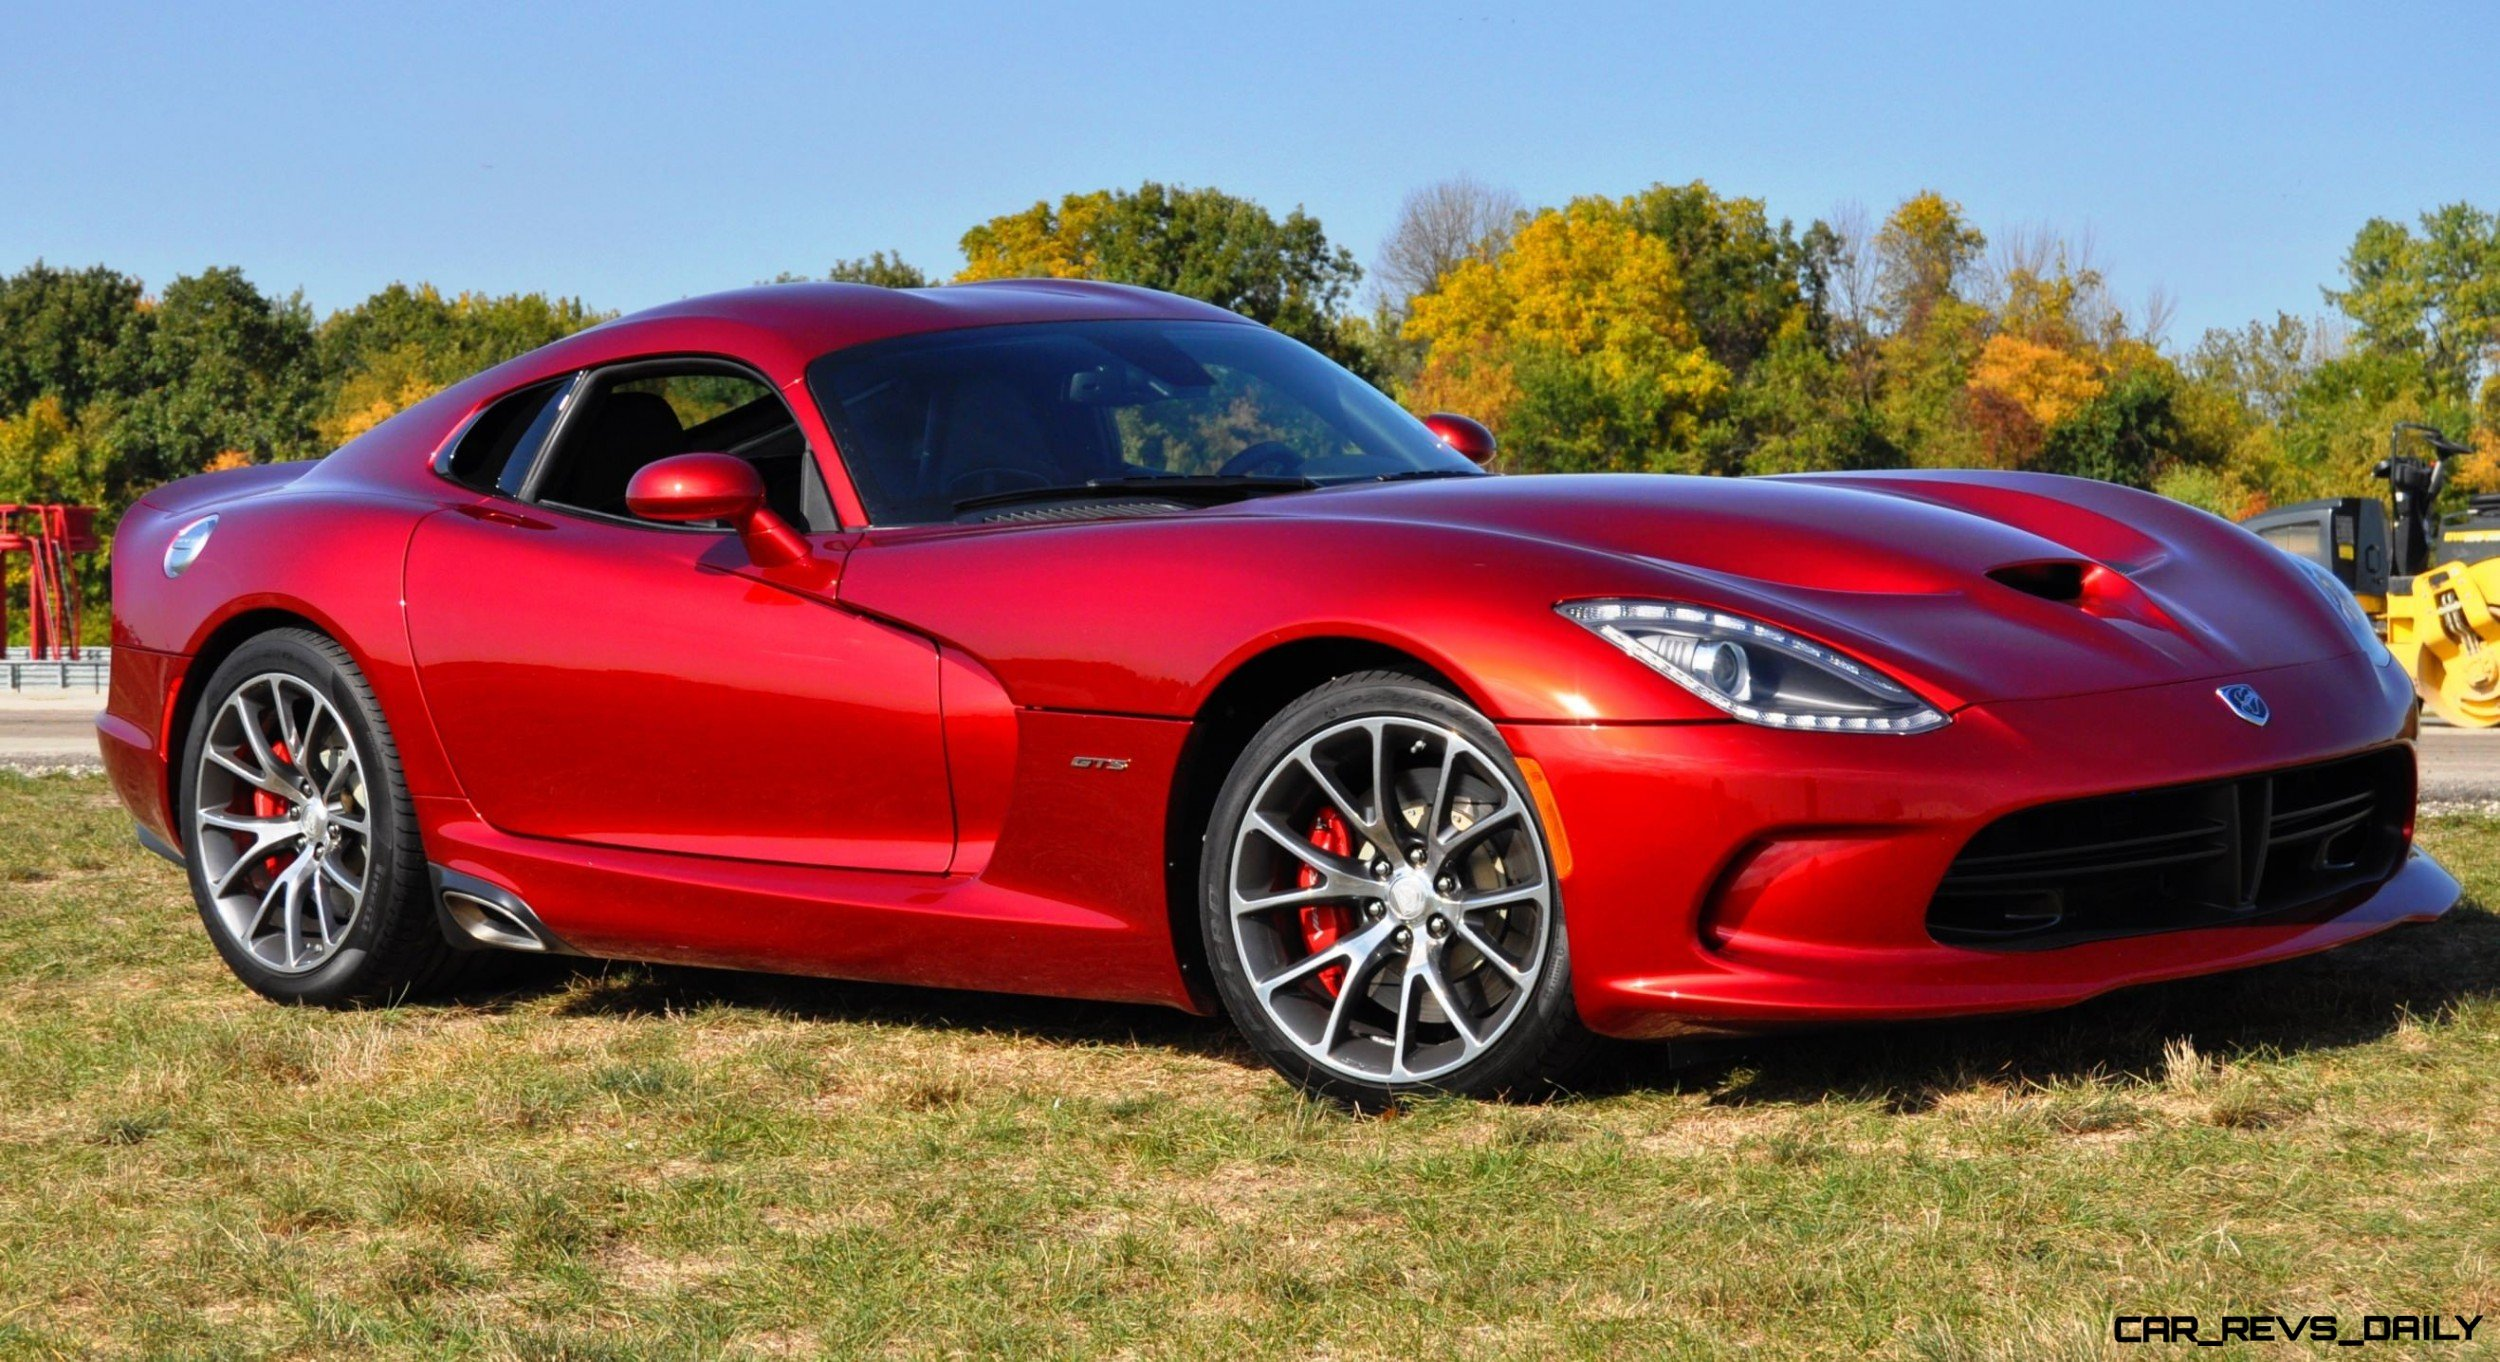 CarRevsDaily.com - 2014 SRT Viper GTS - Huge Wallpapers8